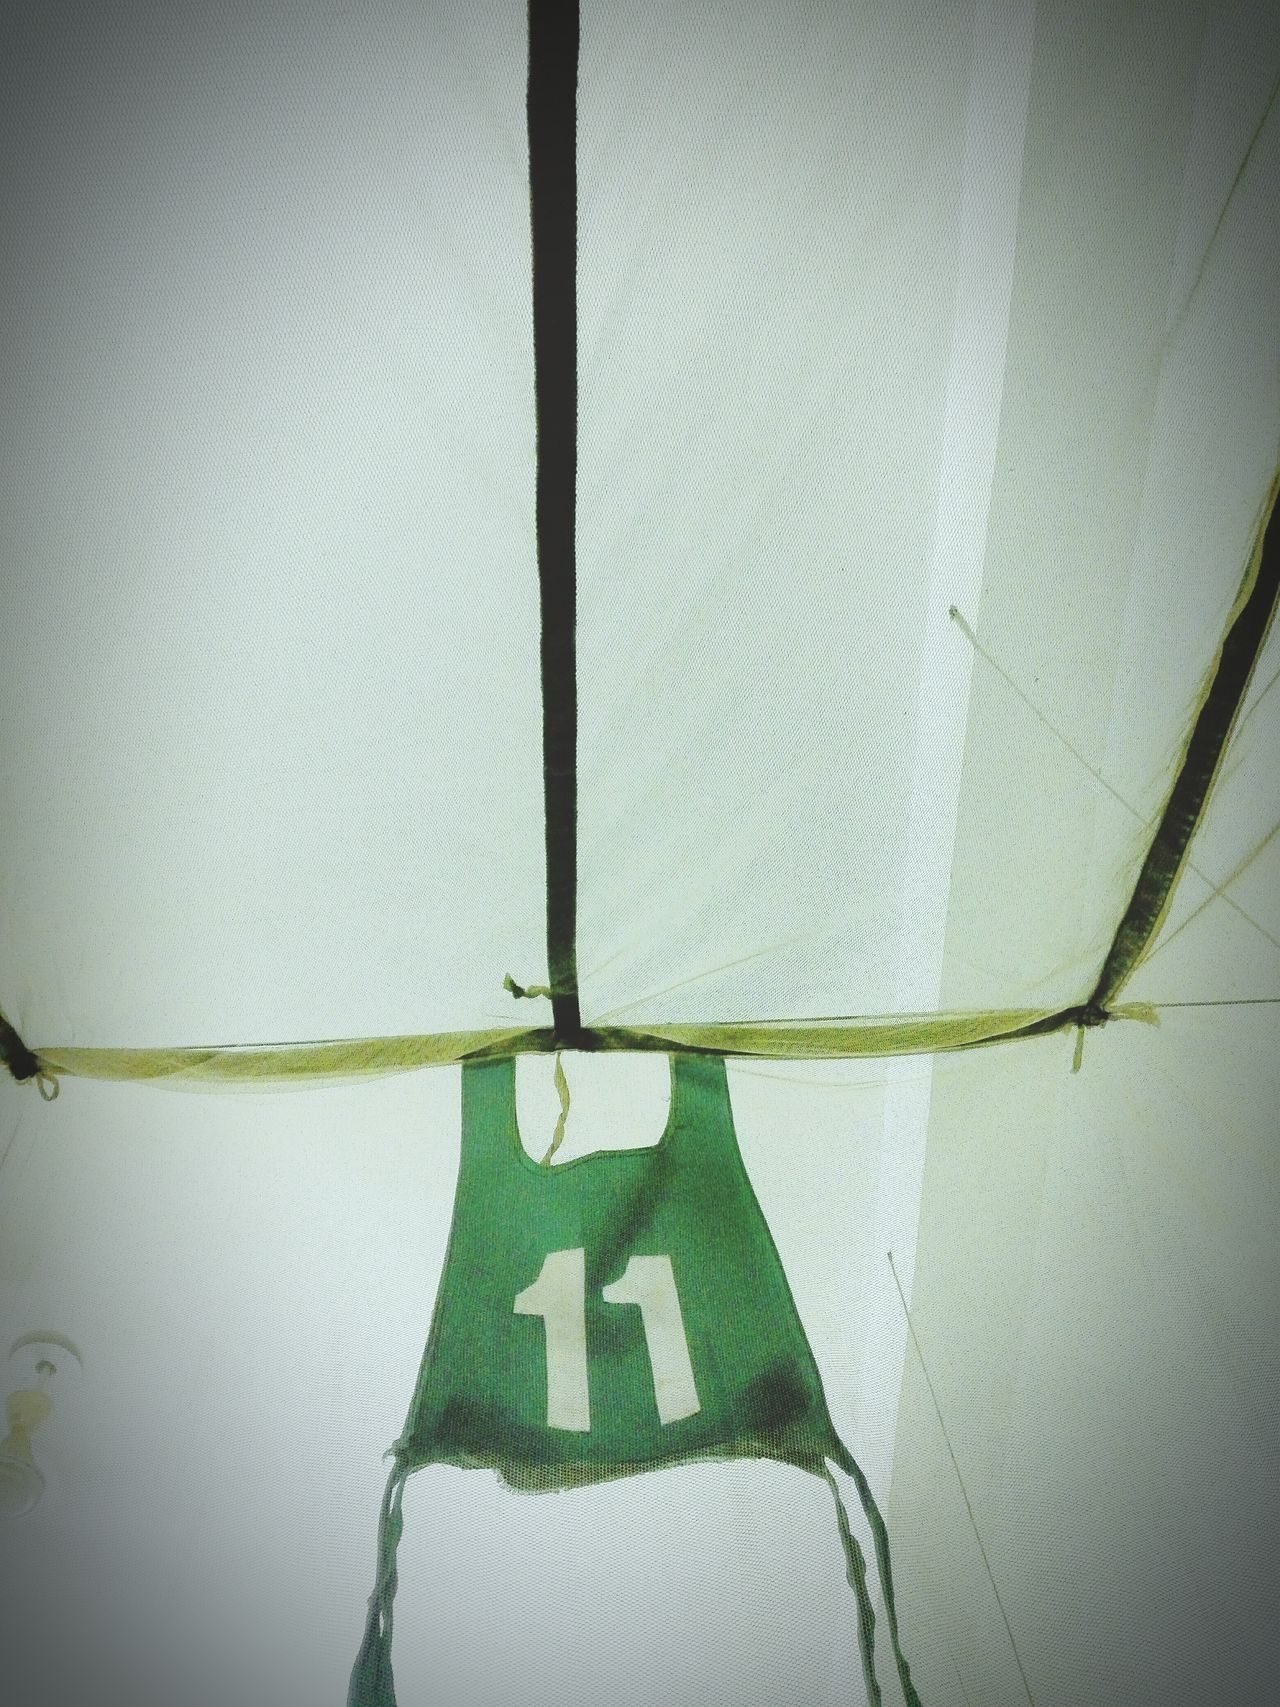 Chest no.11 Mobilephotography Mobile Photography Huaweiphotography Indoors  Indoor Photography View Lying In Bed Army Life Army Cadets Ssb Recruitment Mosquito Net Apron